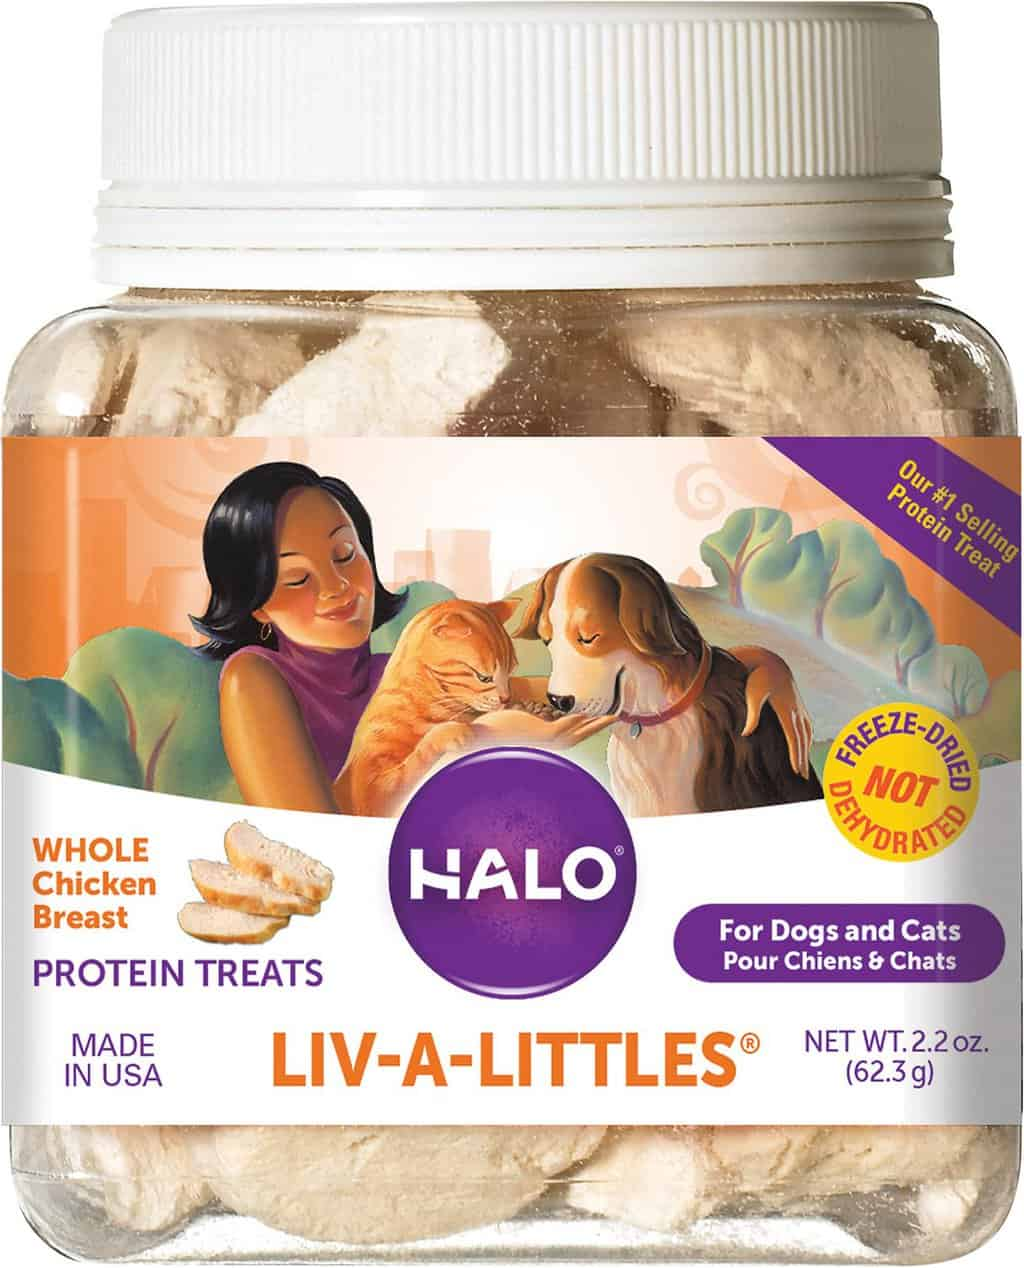 Halo Dog Food: 2021 Review, Recalls & Coupons 21